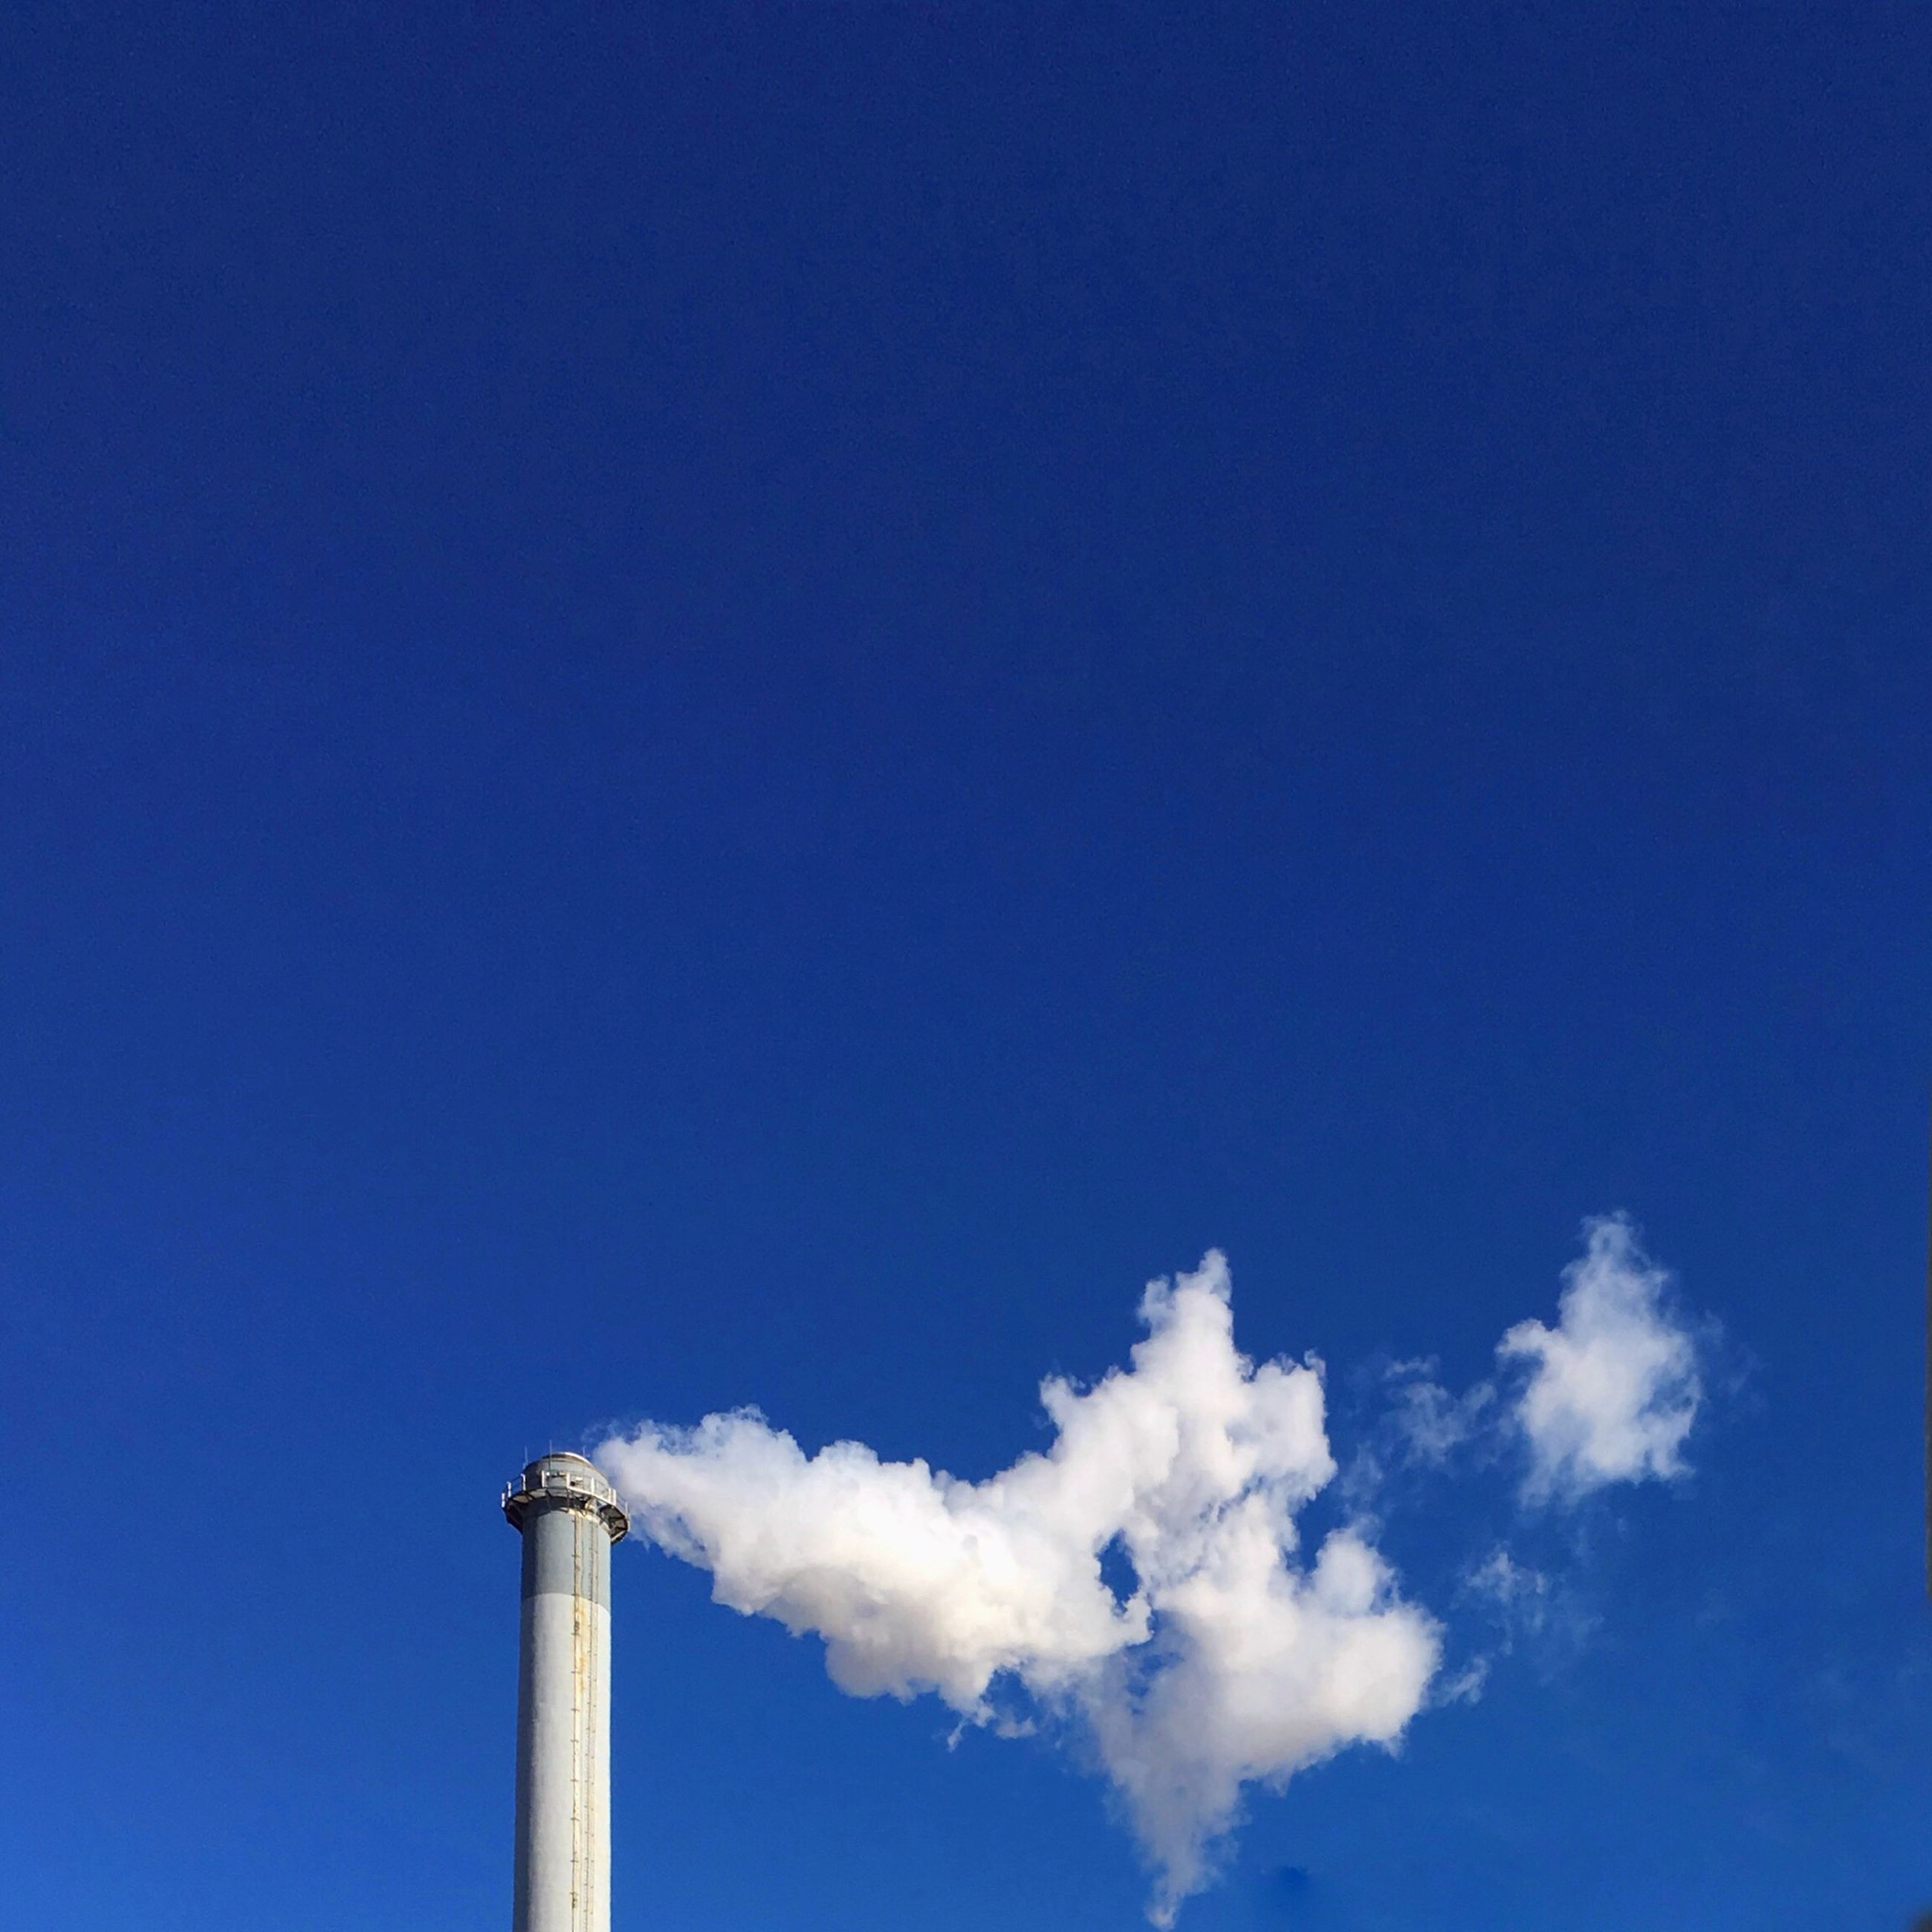 low angle view, blue, copy space, clear sky, sky, built structure, day, no people, pole, high section, outdoors, architecture, smoke stack, cloud, nature, sunlight, chimney, cloud - sky, tranquility, vapor trail